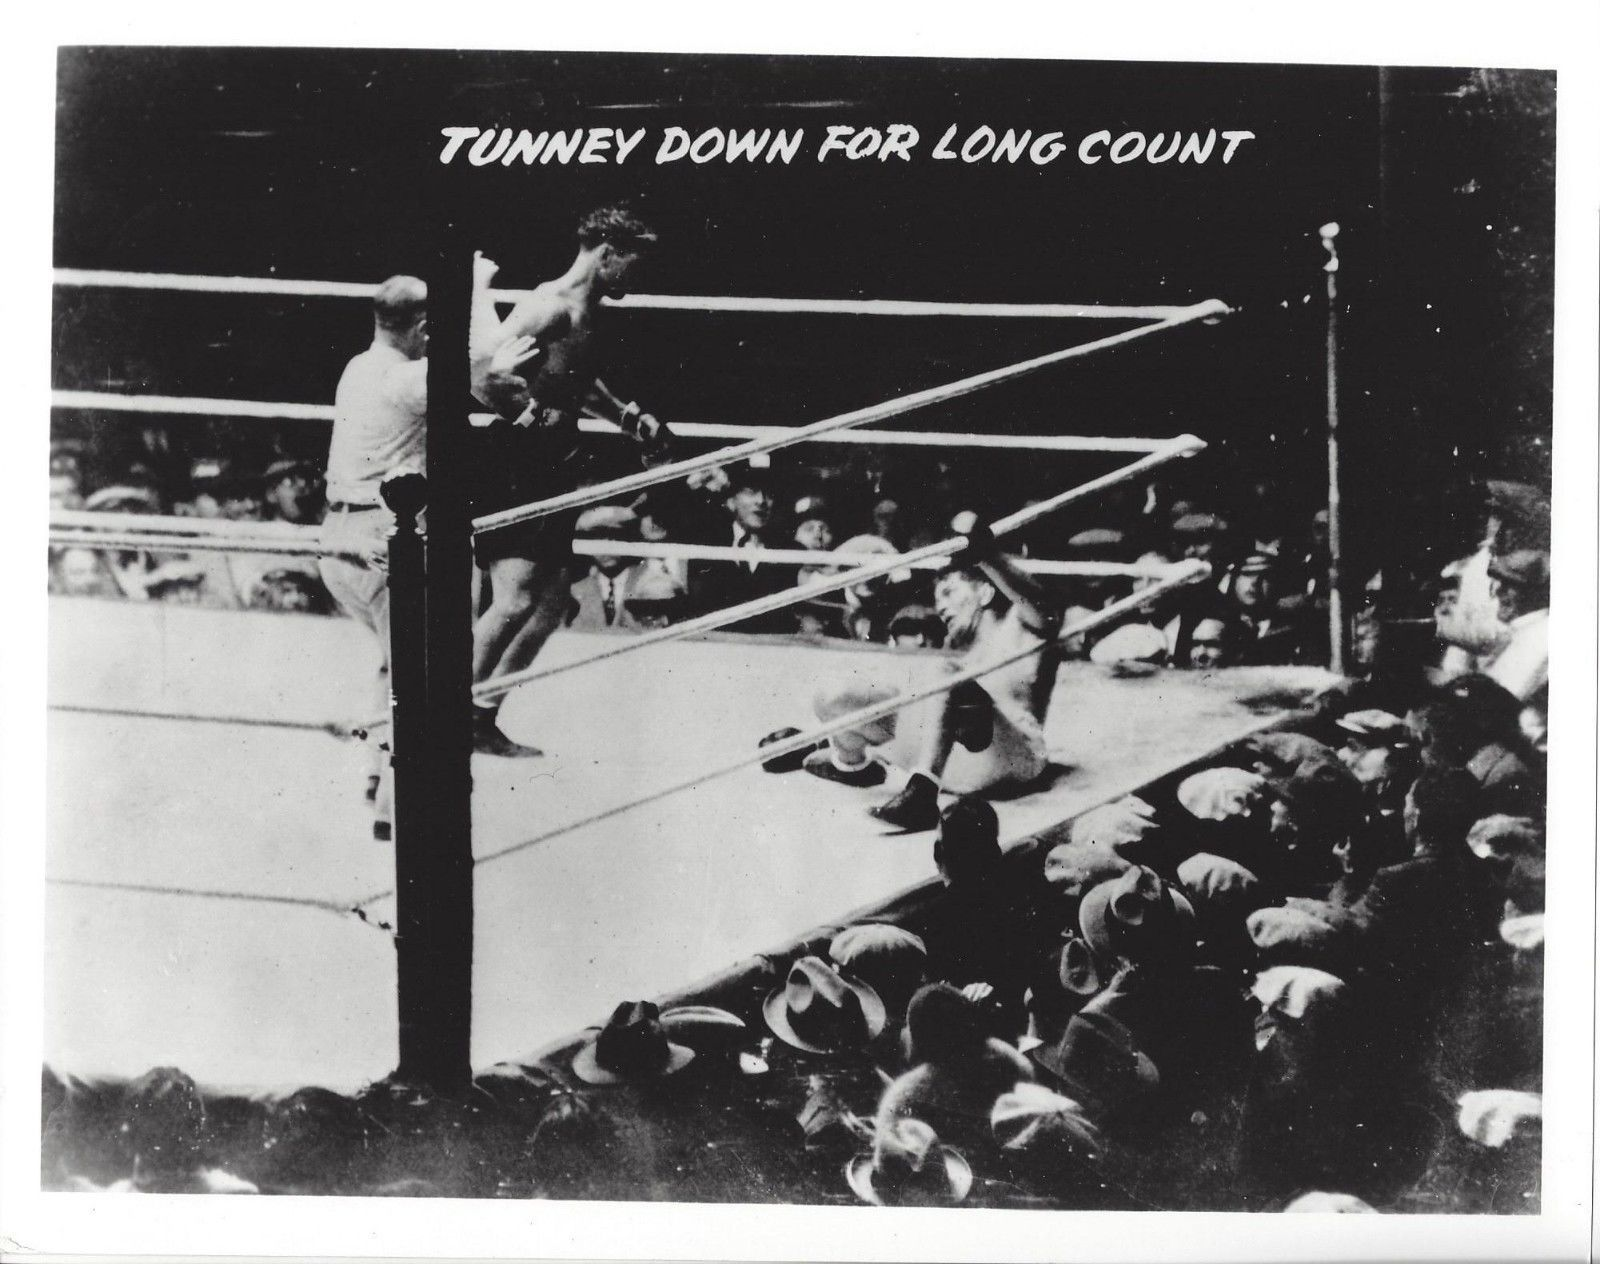 Primary image for JACK TUNNEY LONG COUNT 8X10 PHOTO BOXING PICTURE